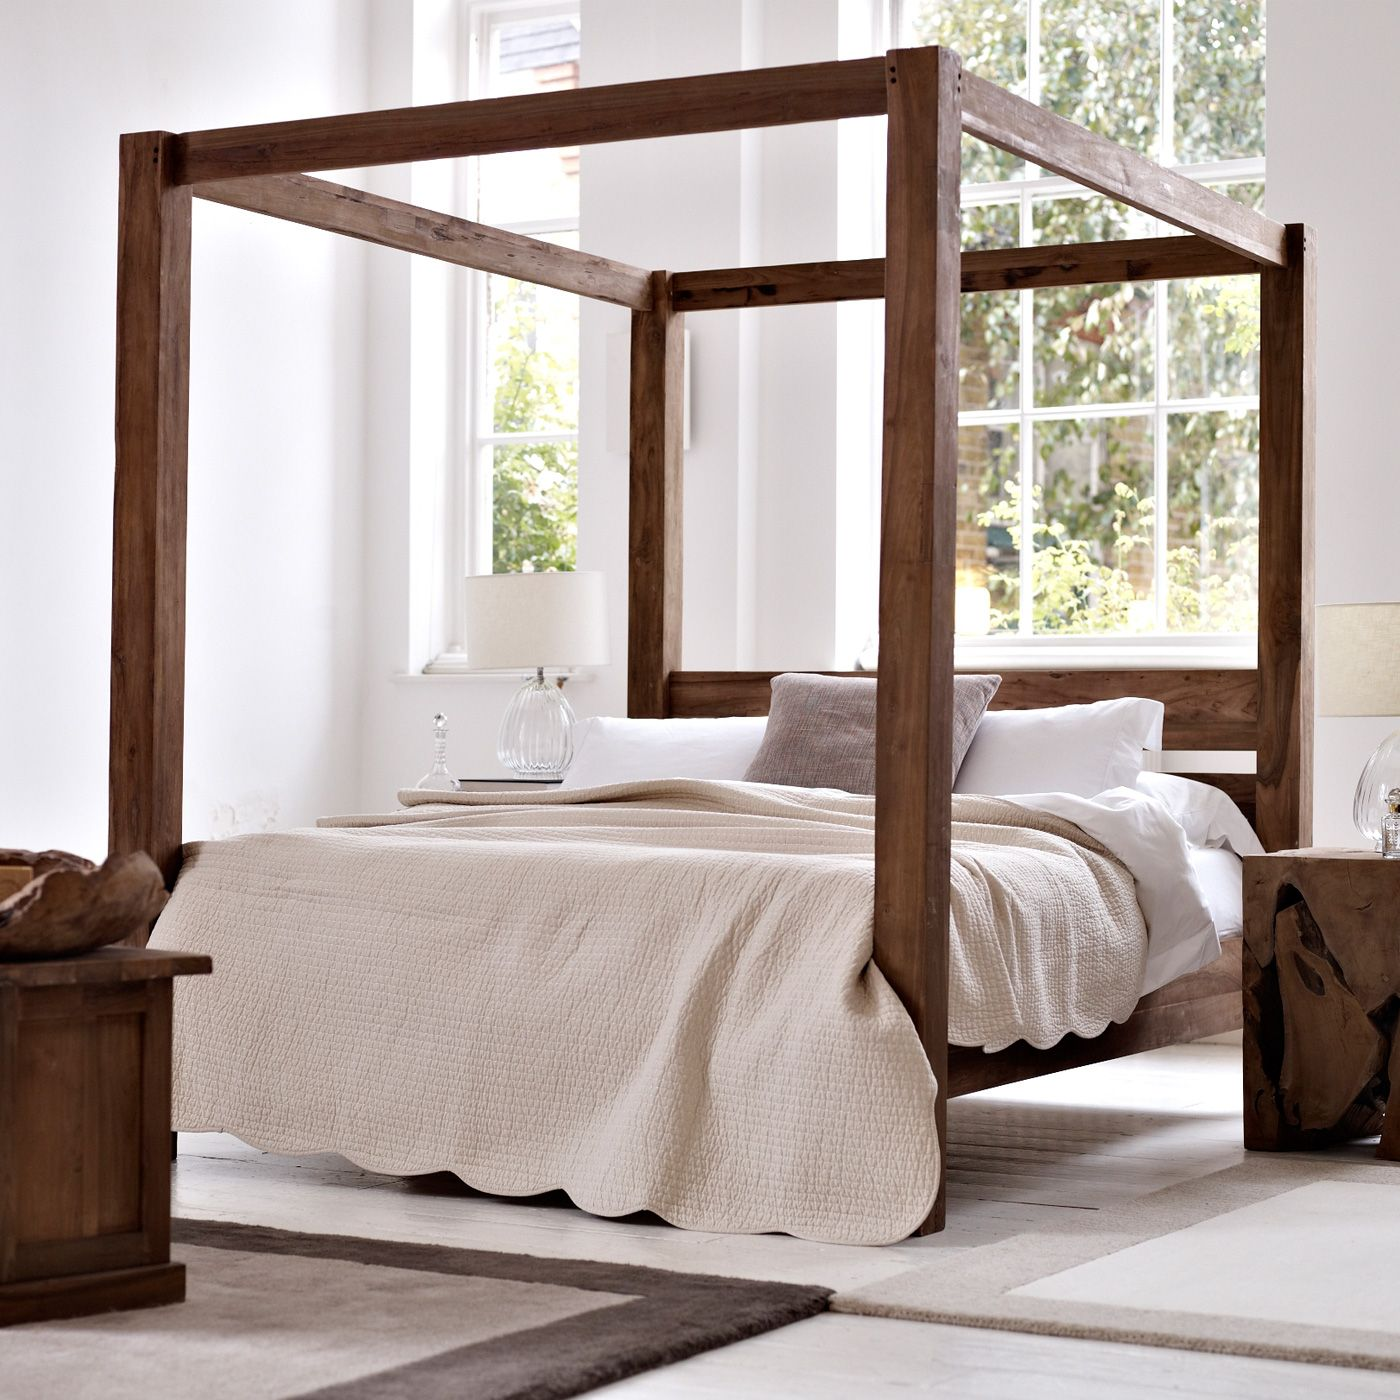 4post Bed Four Poster Bed Master Bedroom Four Poster Bed Frame Canopy